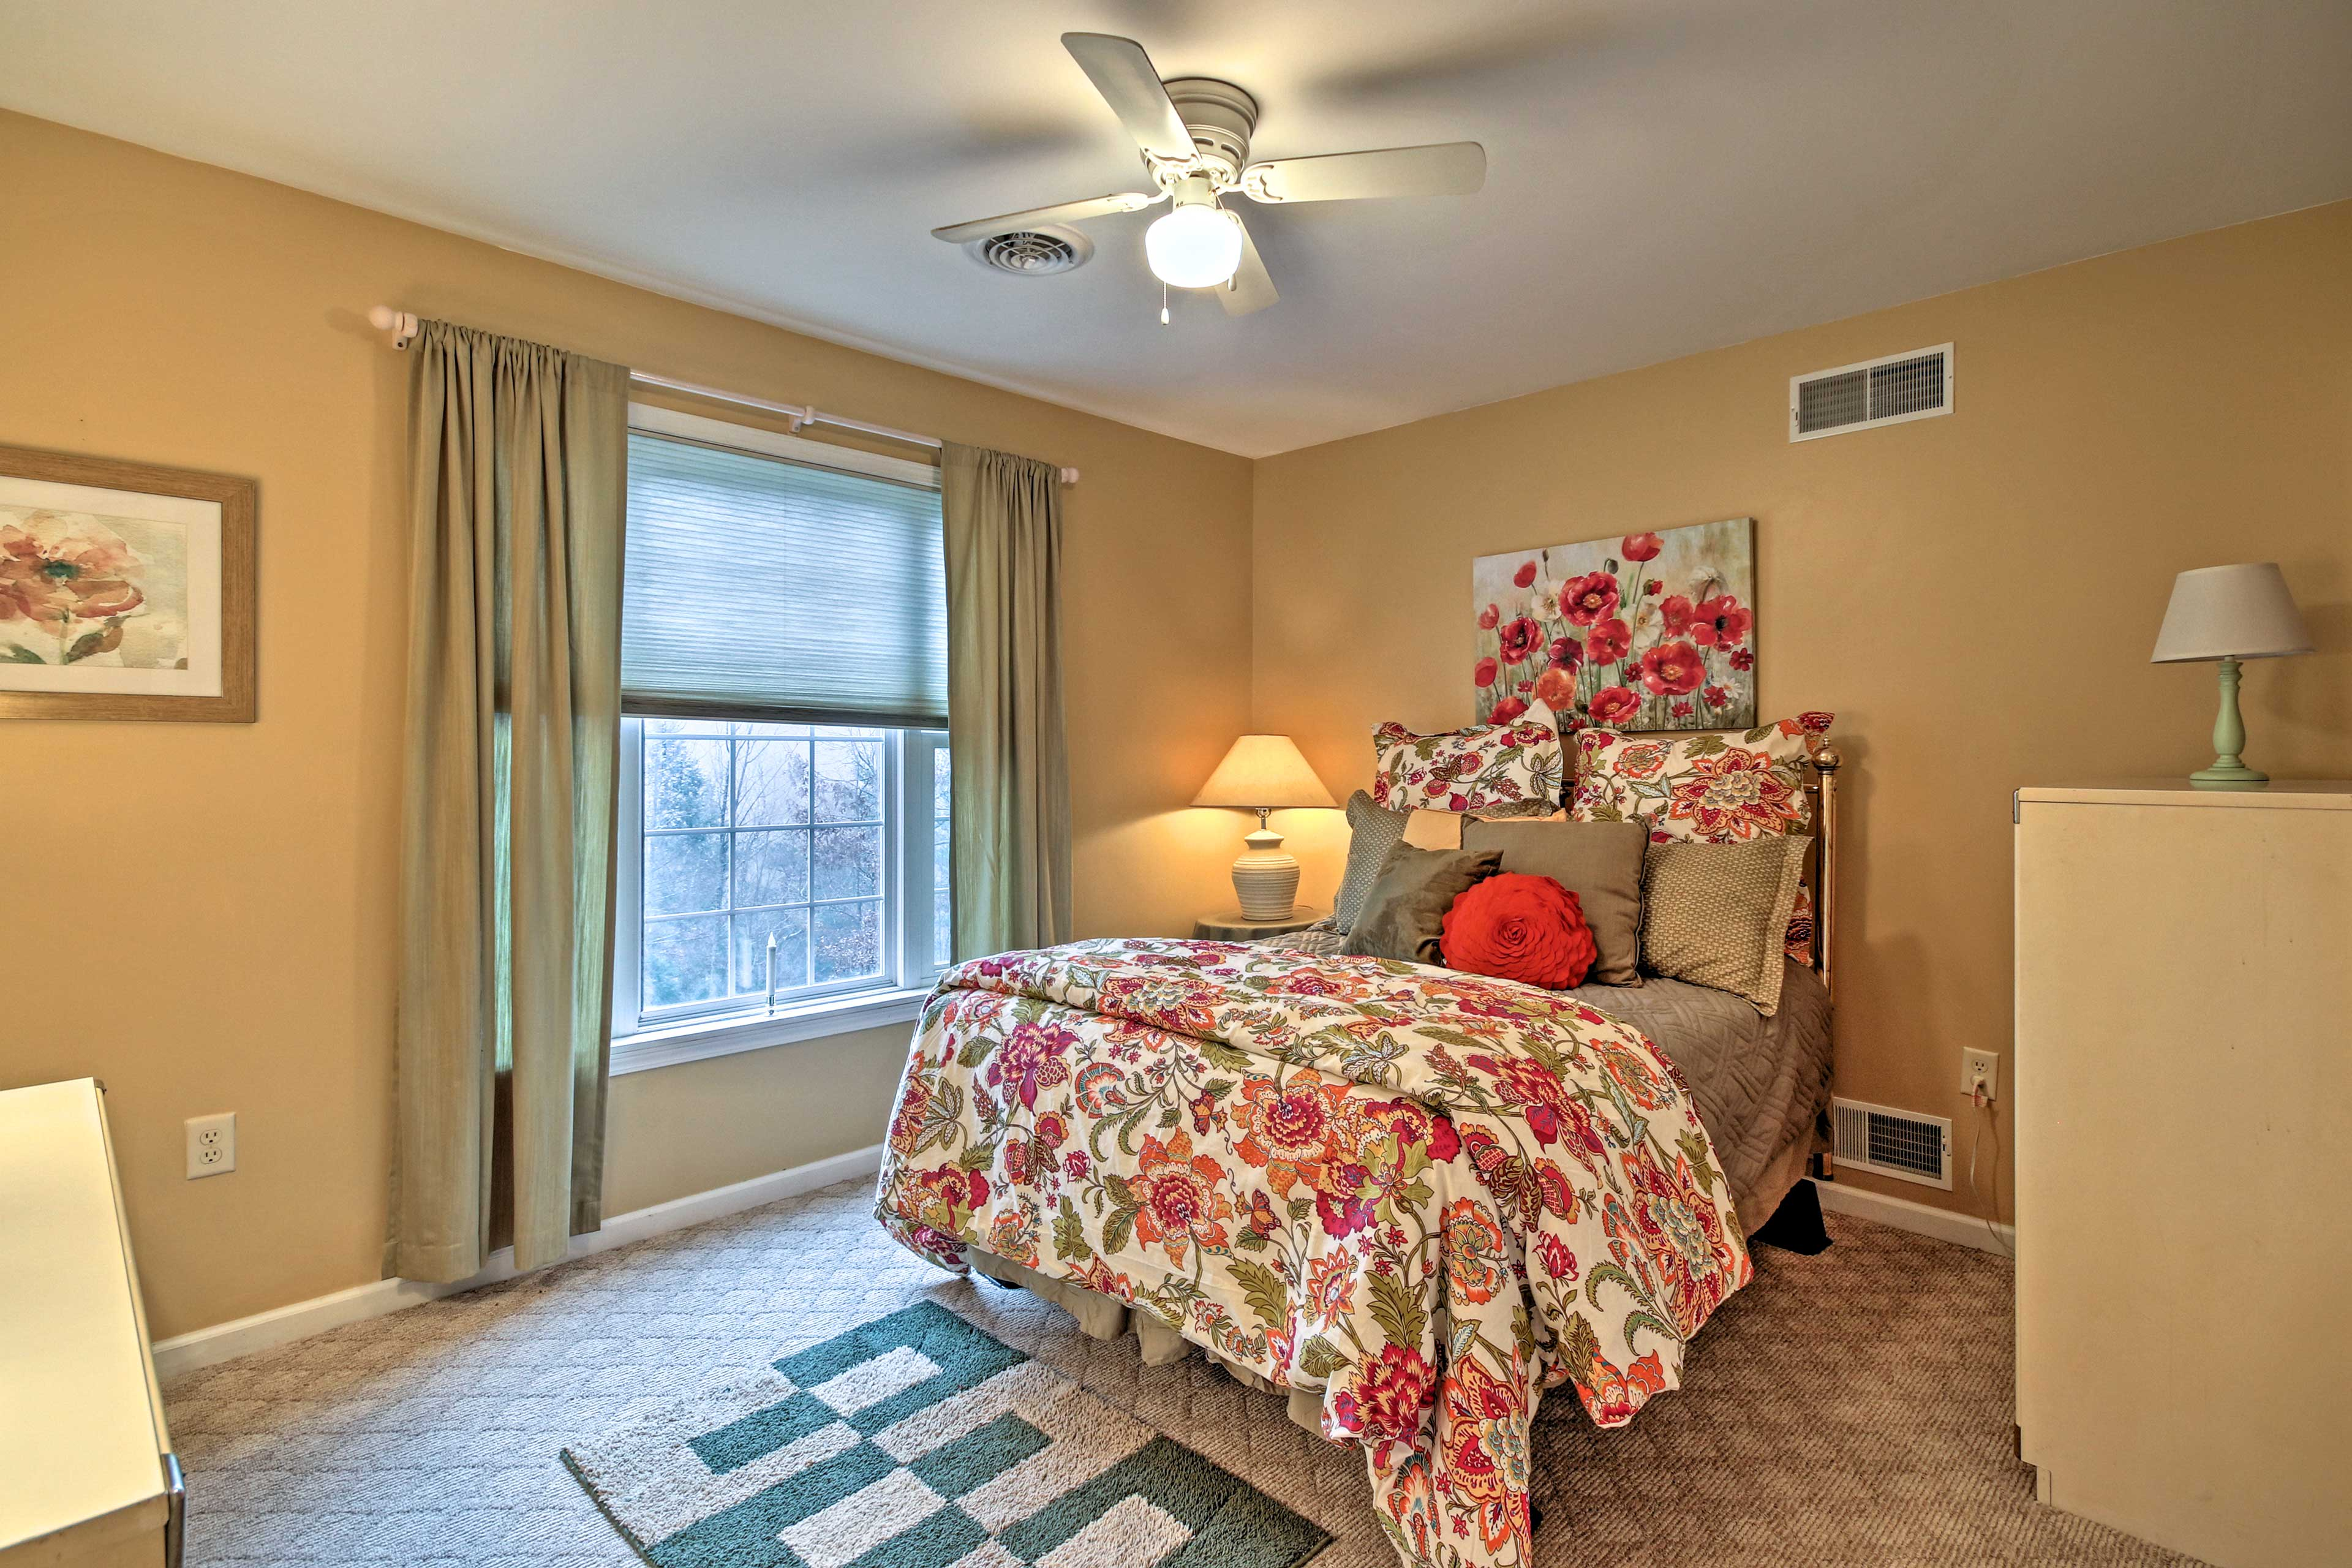 Bedroom 3 is complete with a cozy full bed.